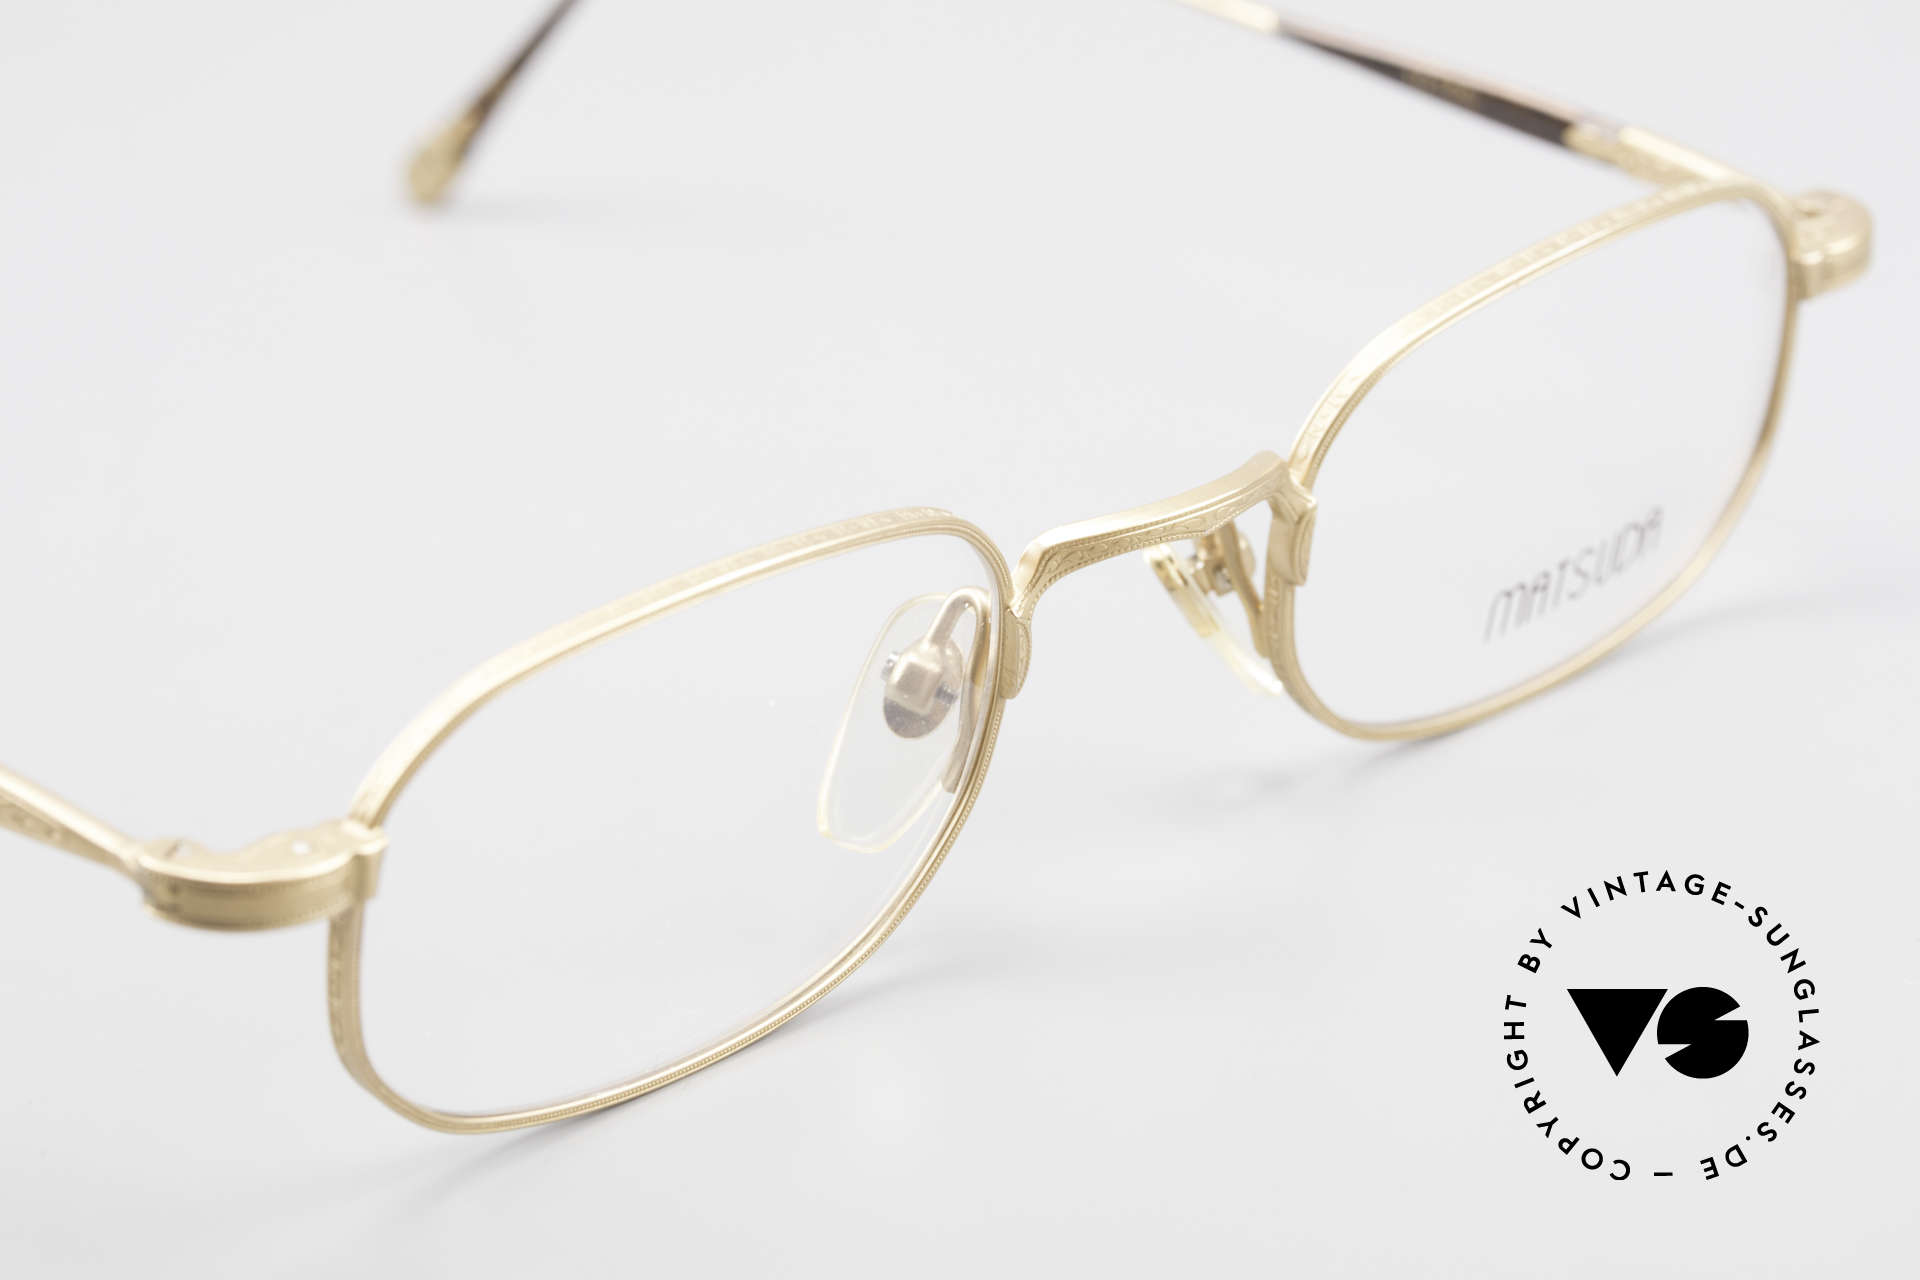 Matsuda 10108 Men's Eyeglasses 90's High End, the DEMO lenses can be replaced with lenses of any kind, Made for Men